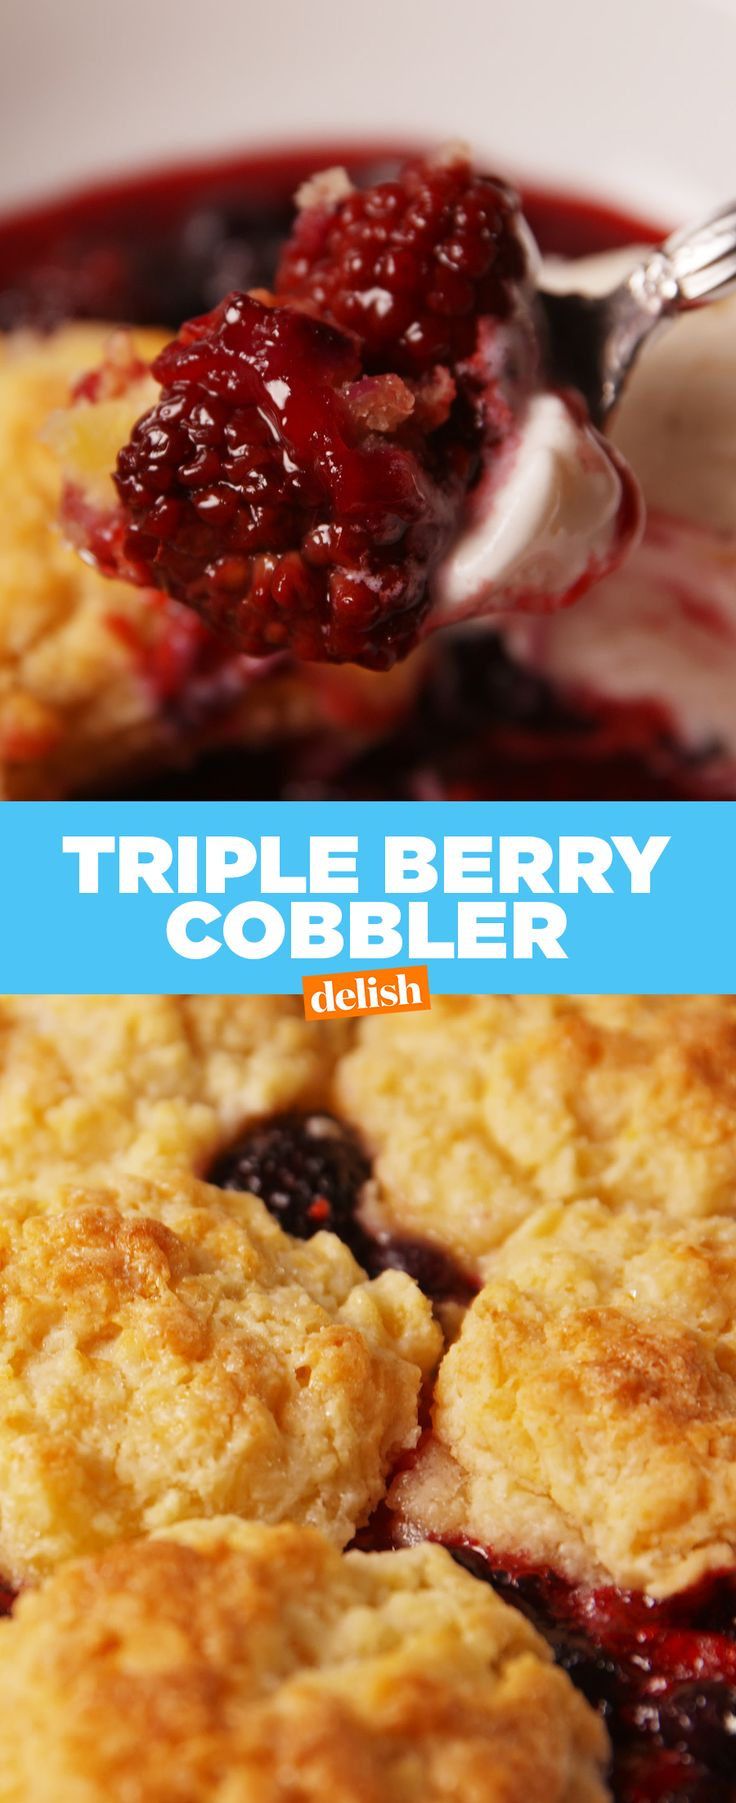 We're 100% down for three servings of fruit if it comes from this Triple Berry Cobbler. Get the recipe at Delish.com.